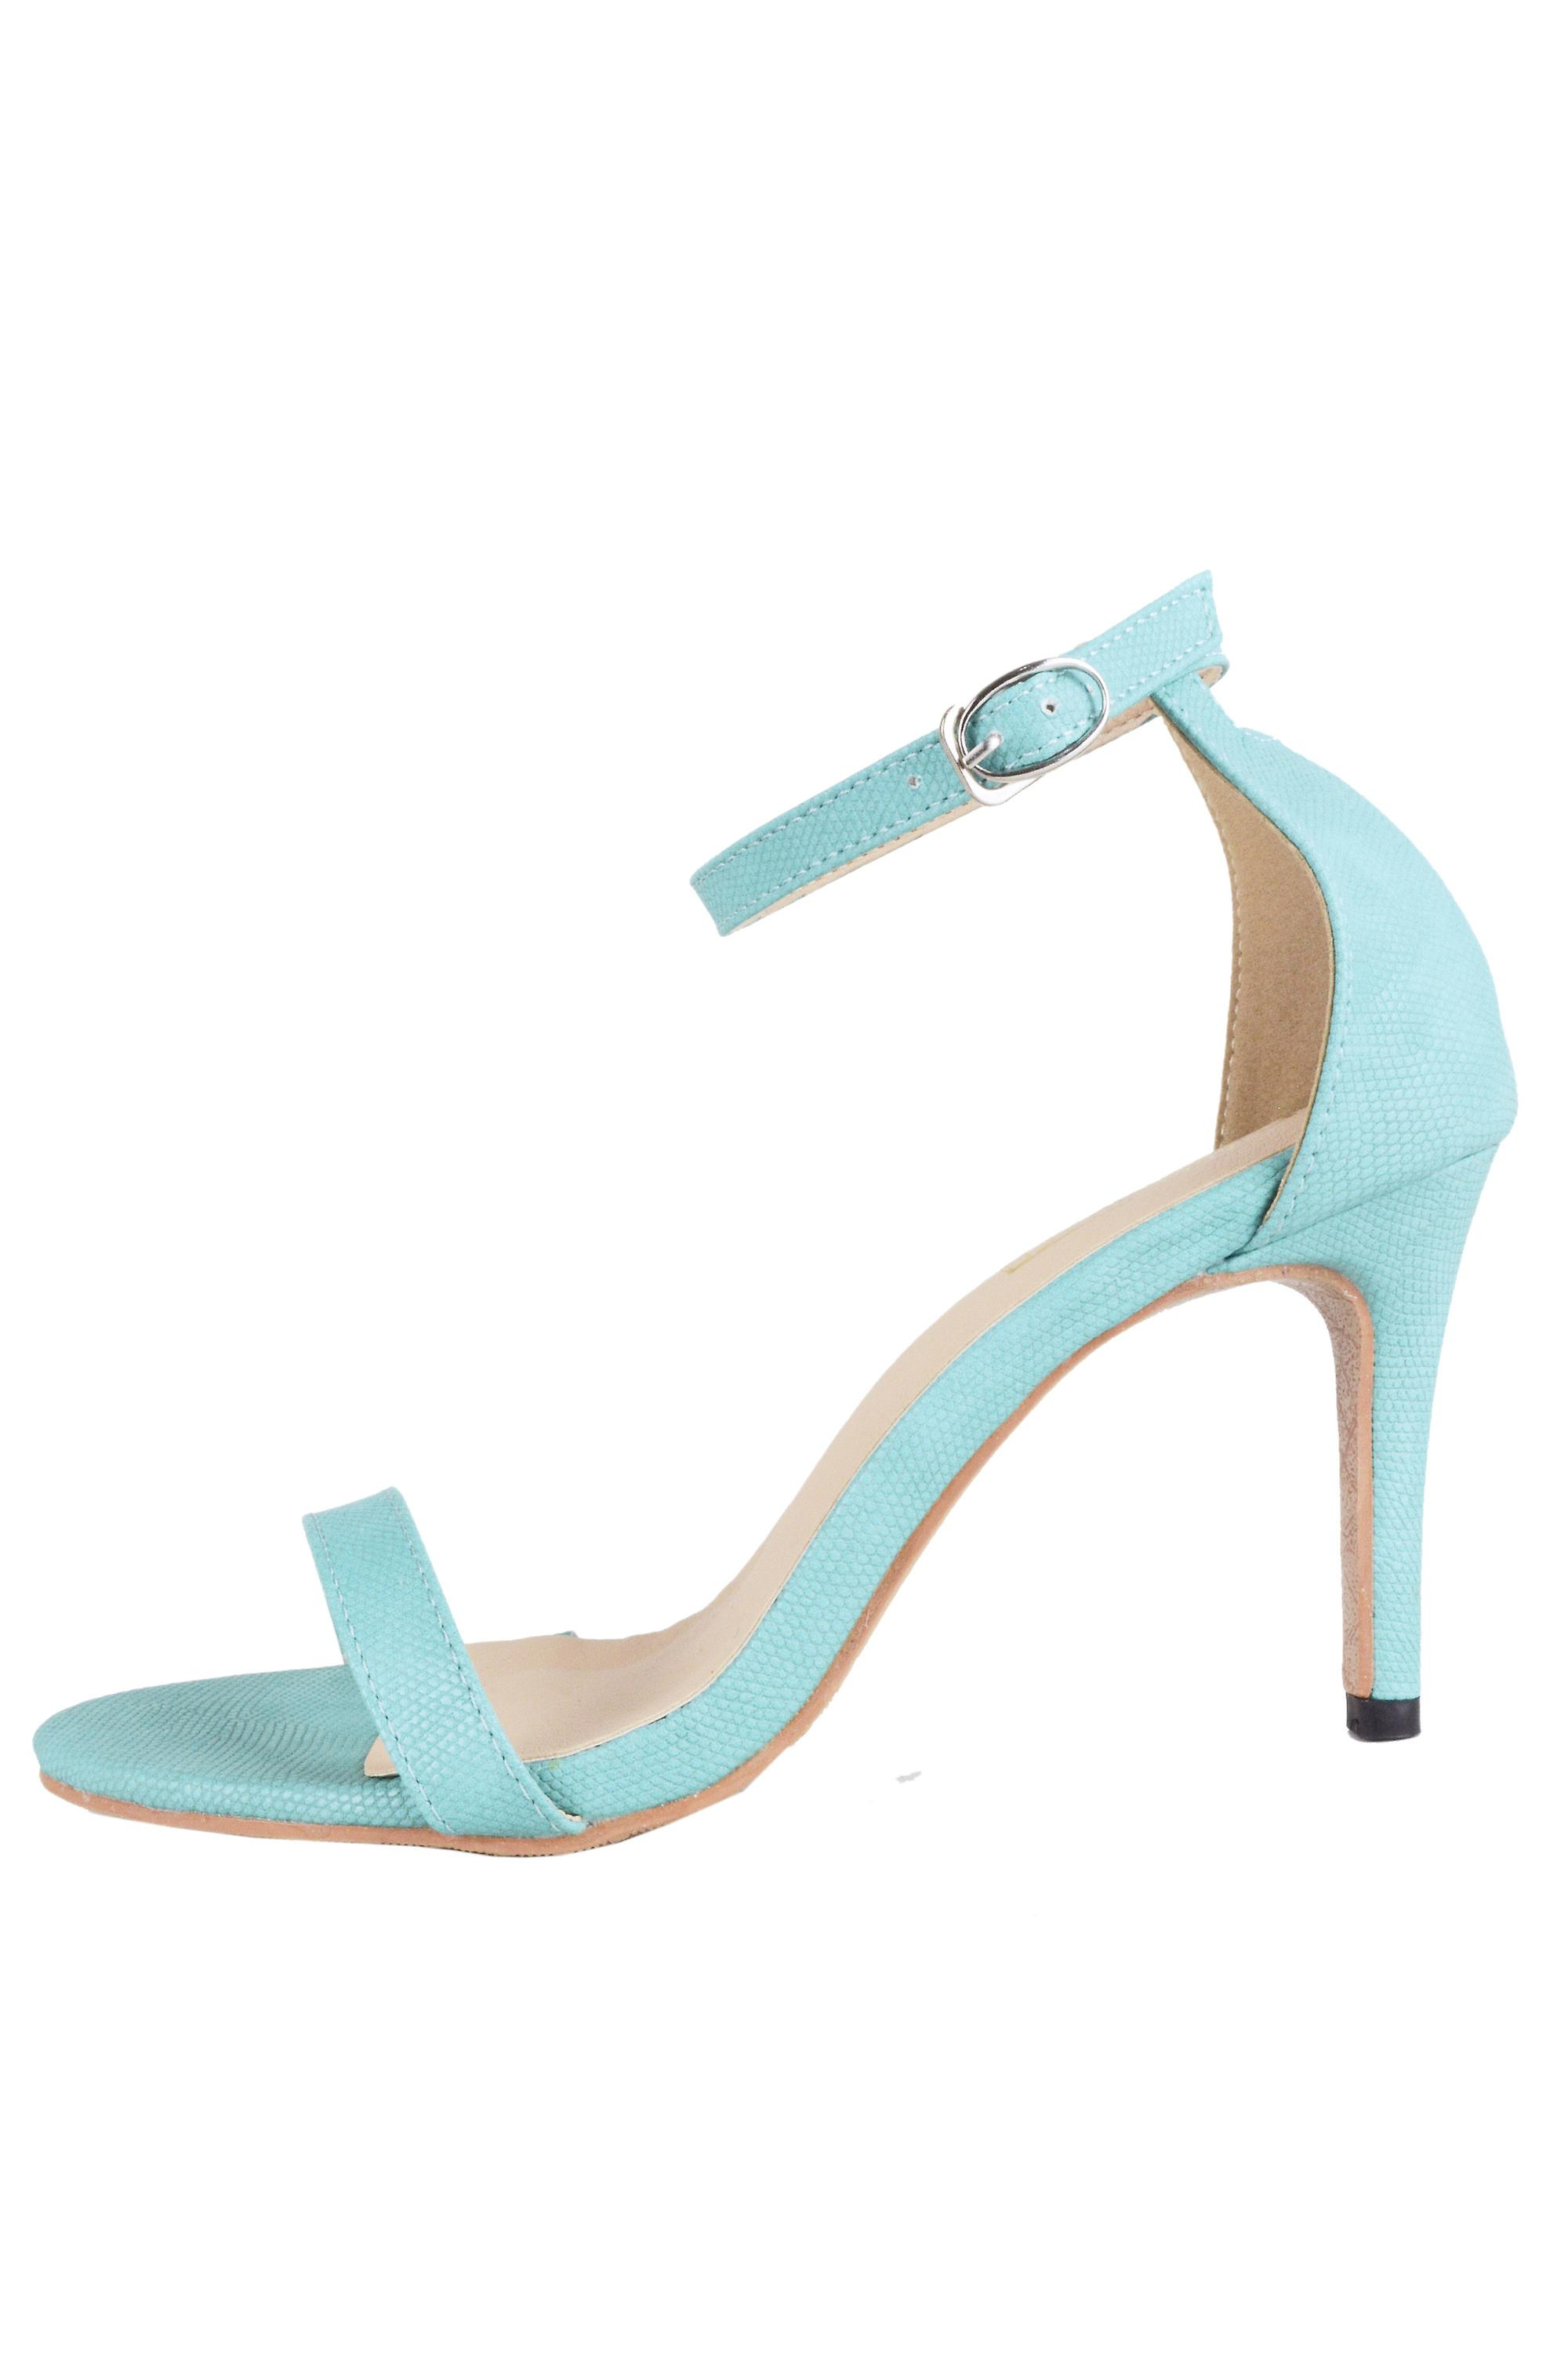 Lovemystyle Mint Blue Barely There Heeled Sandals